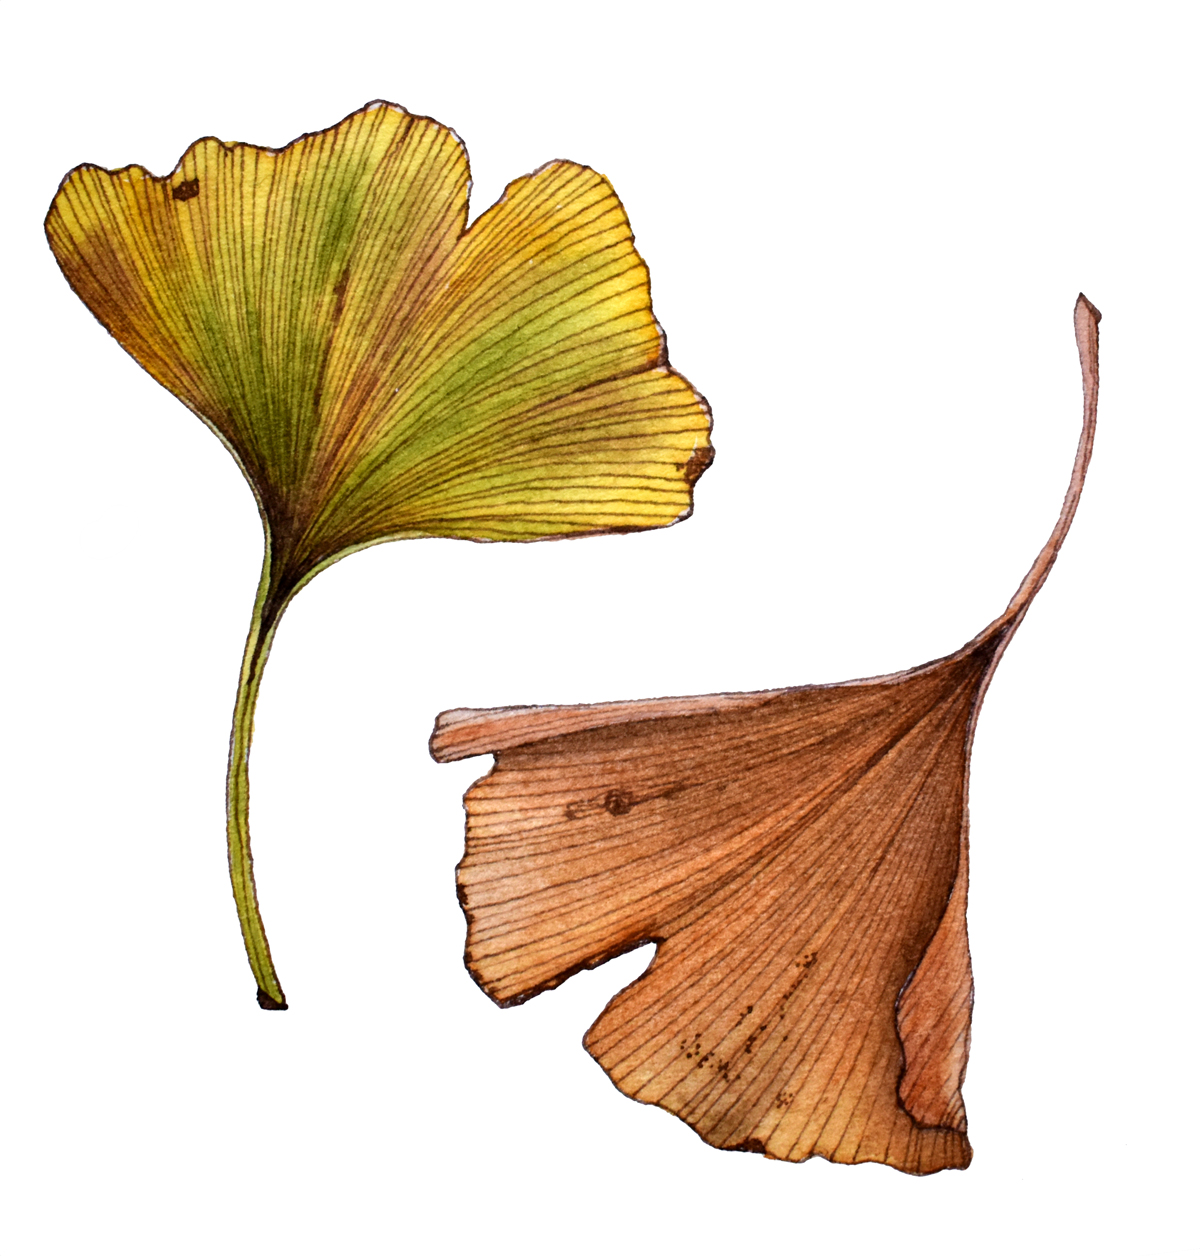 Ginkgo biloba: These leaves were painted with the Princeton synthetic squirrel. The soft bristles slightly teased the ink lines, blending them without erasing them.